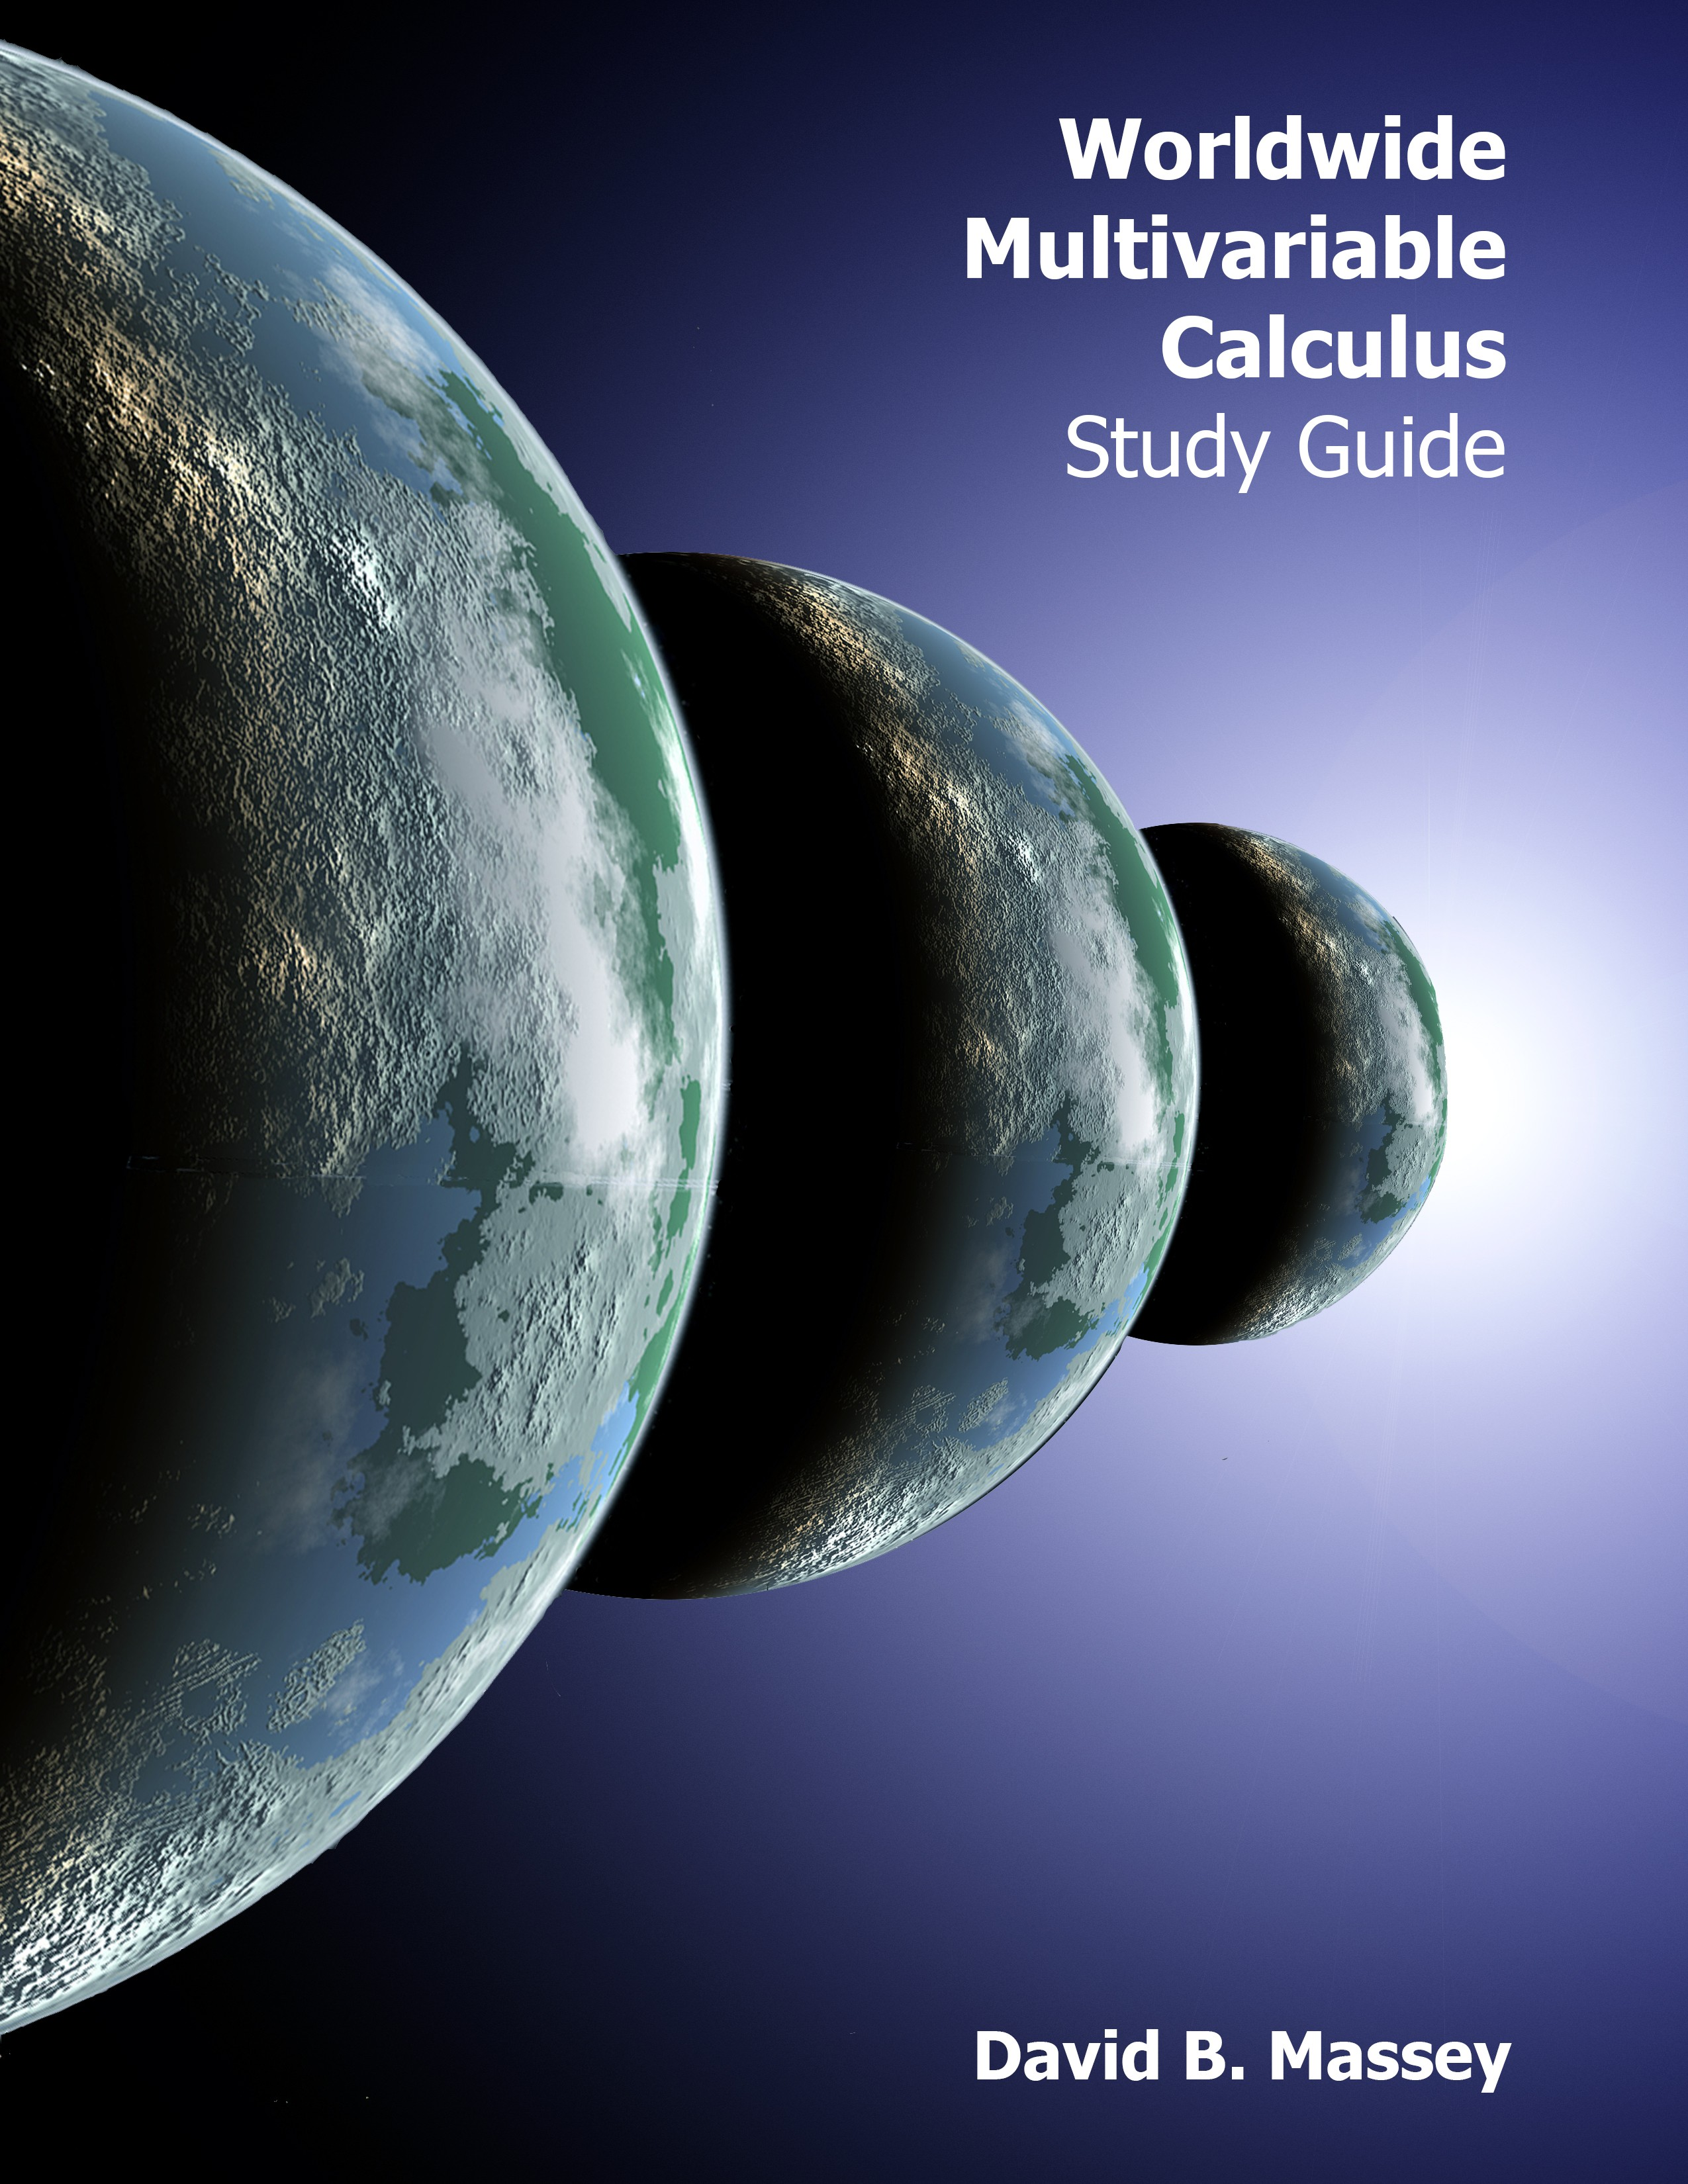 DIGITAL STUDY GUIDE: Worldwide Multivariable Calculus